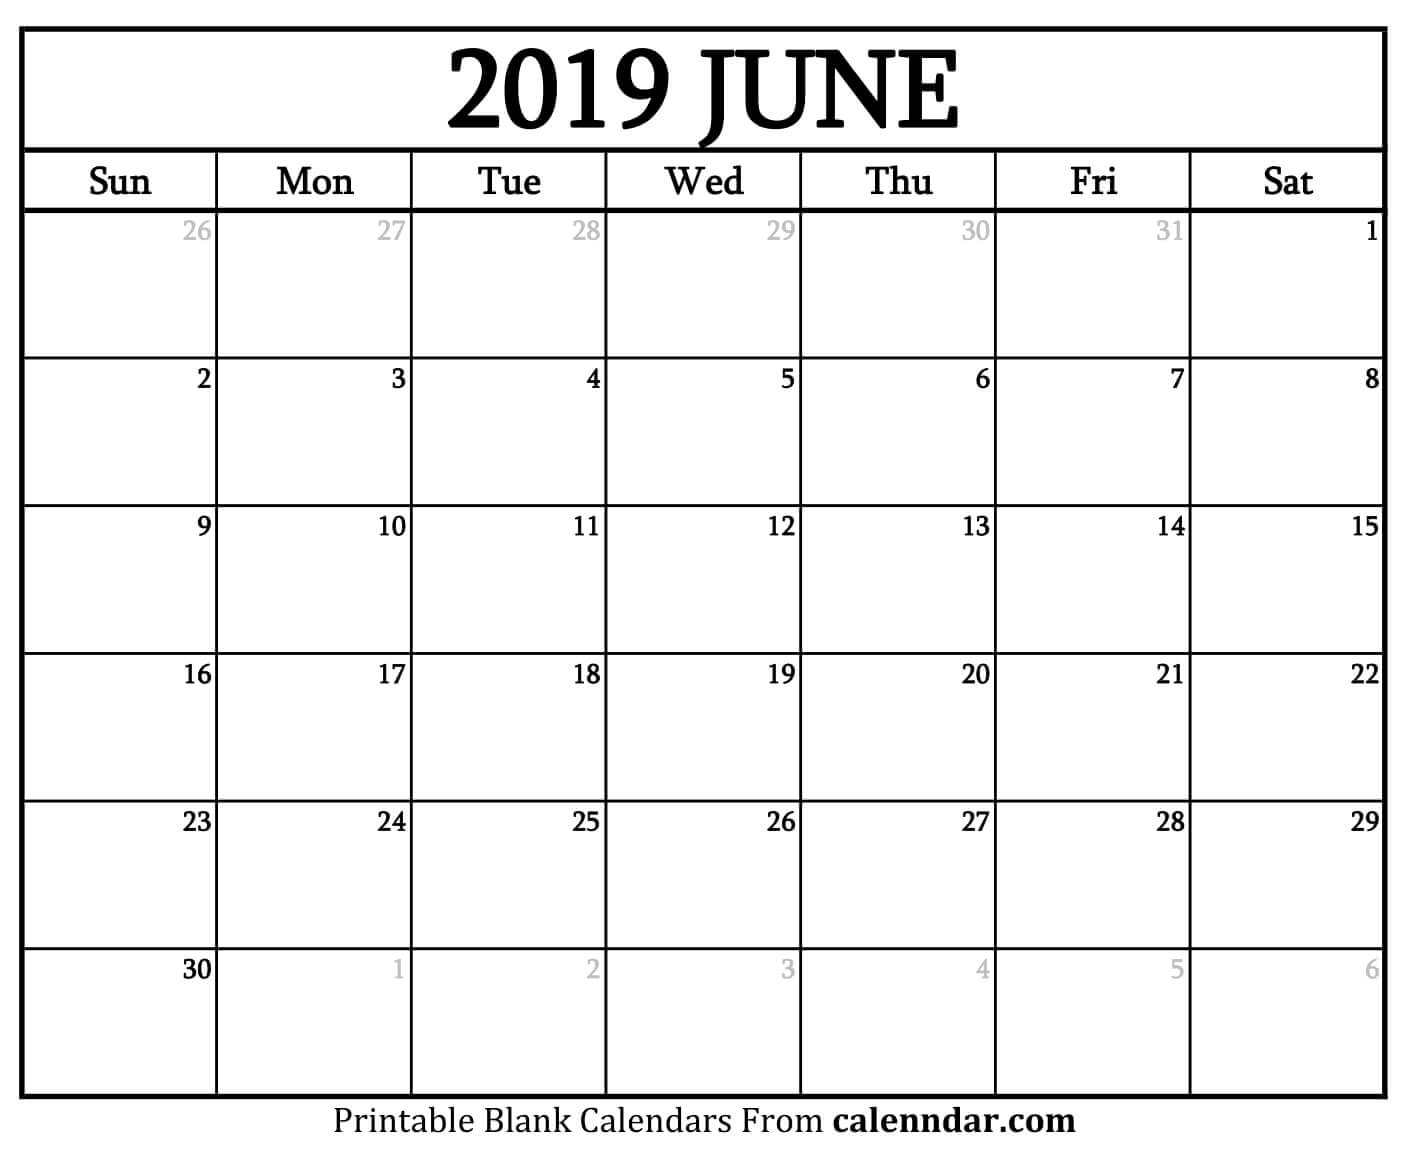 photo about Calendar June Printable named June 2019 Calendar Printable - No cost Printable Calendar